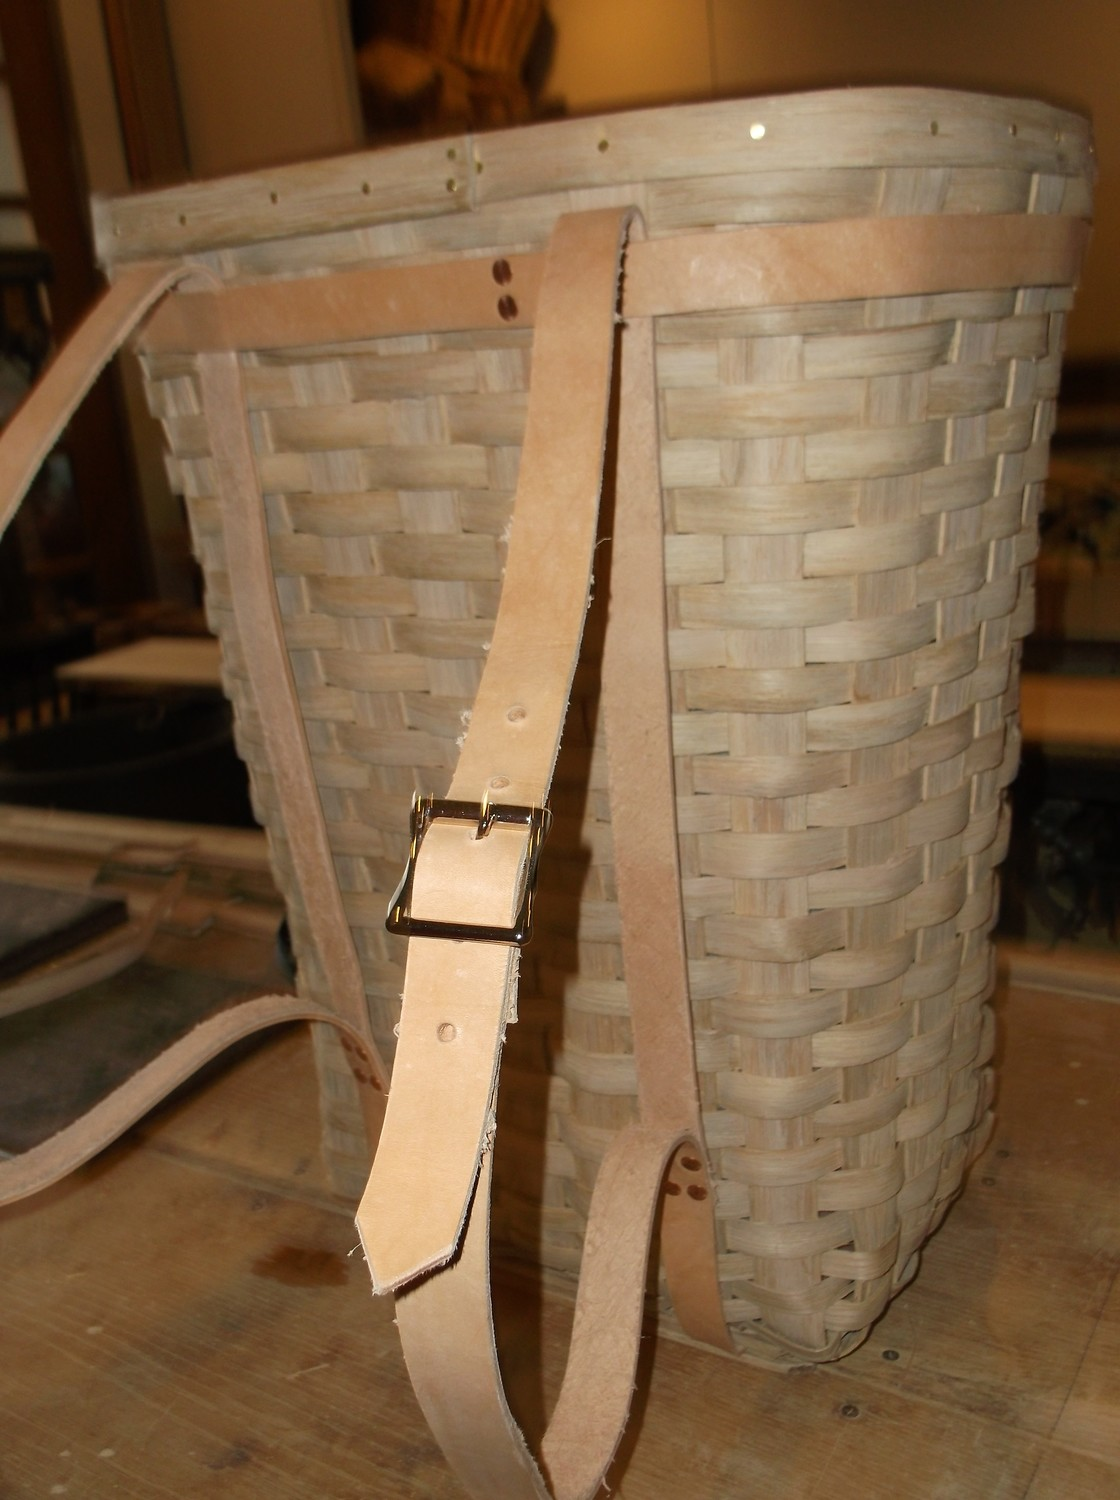 Pack/Trapper's Basket  - 17x13x21, Leather Harness